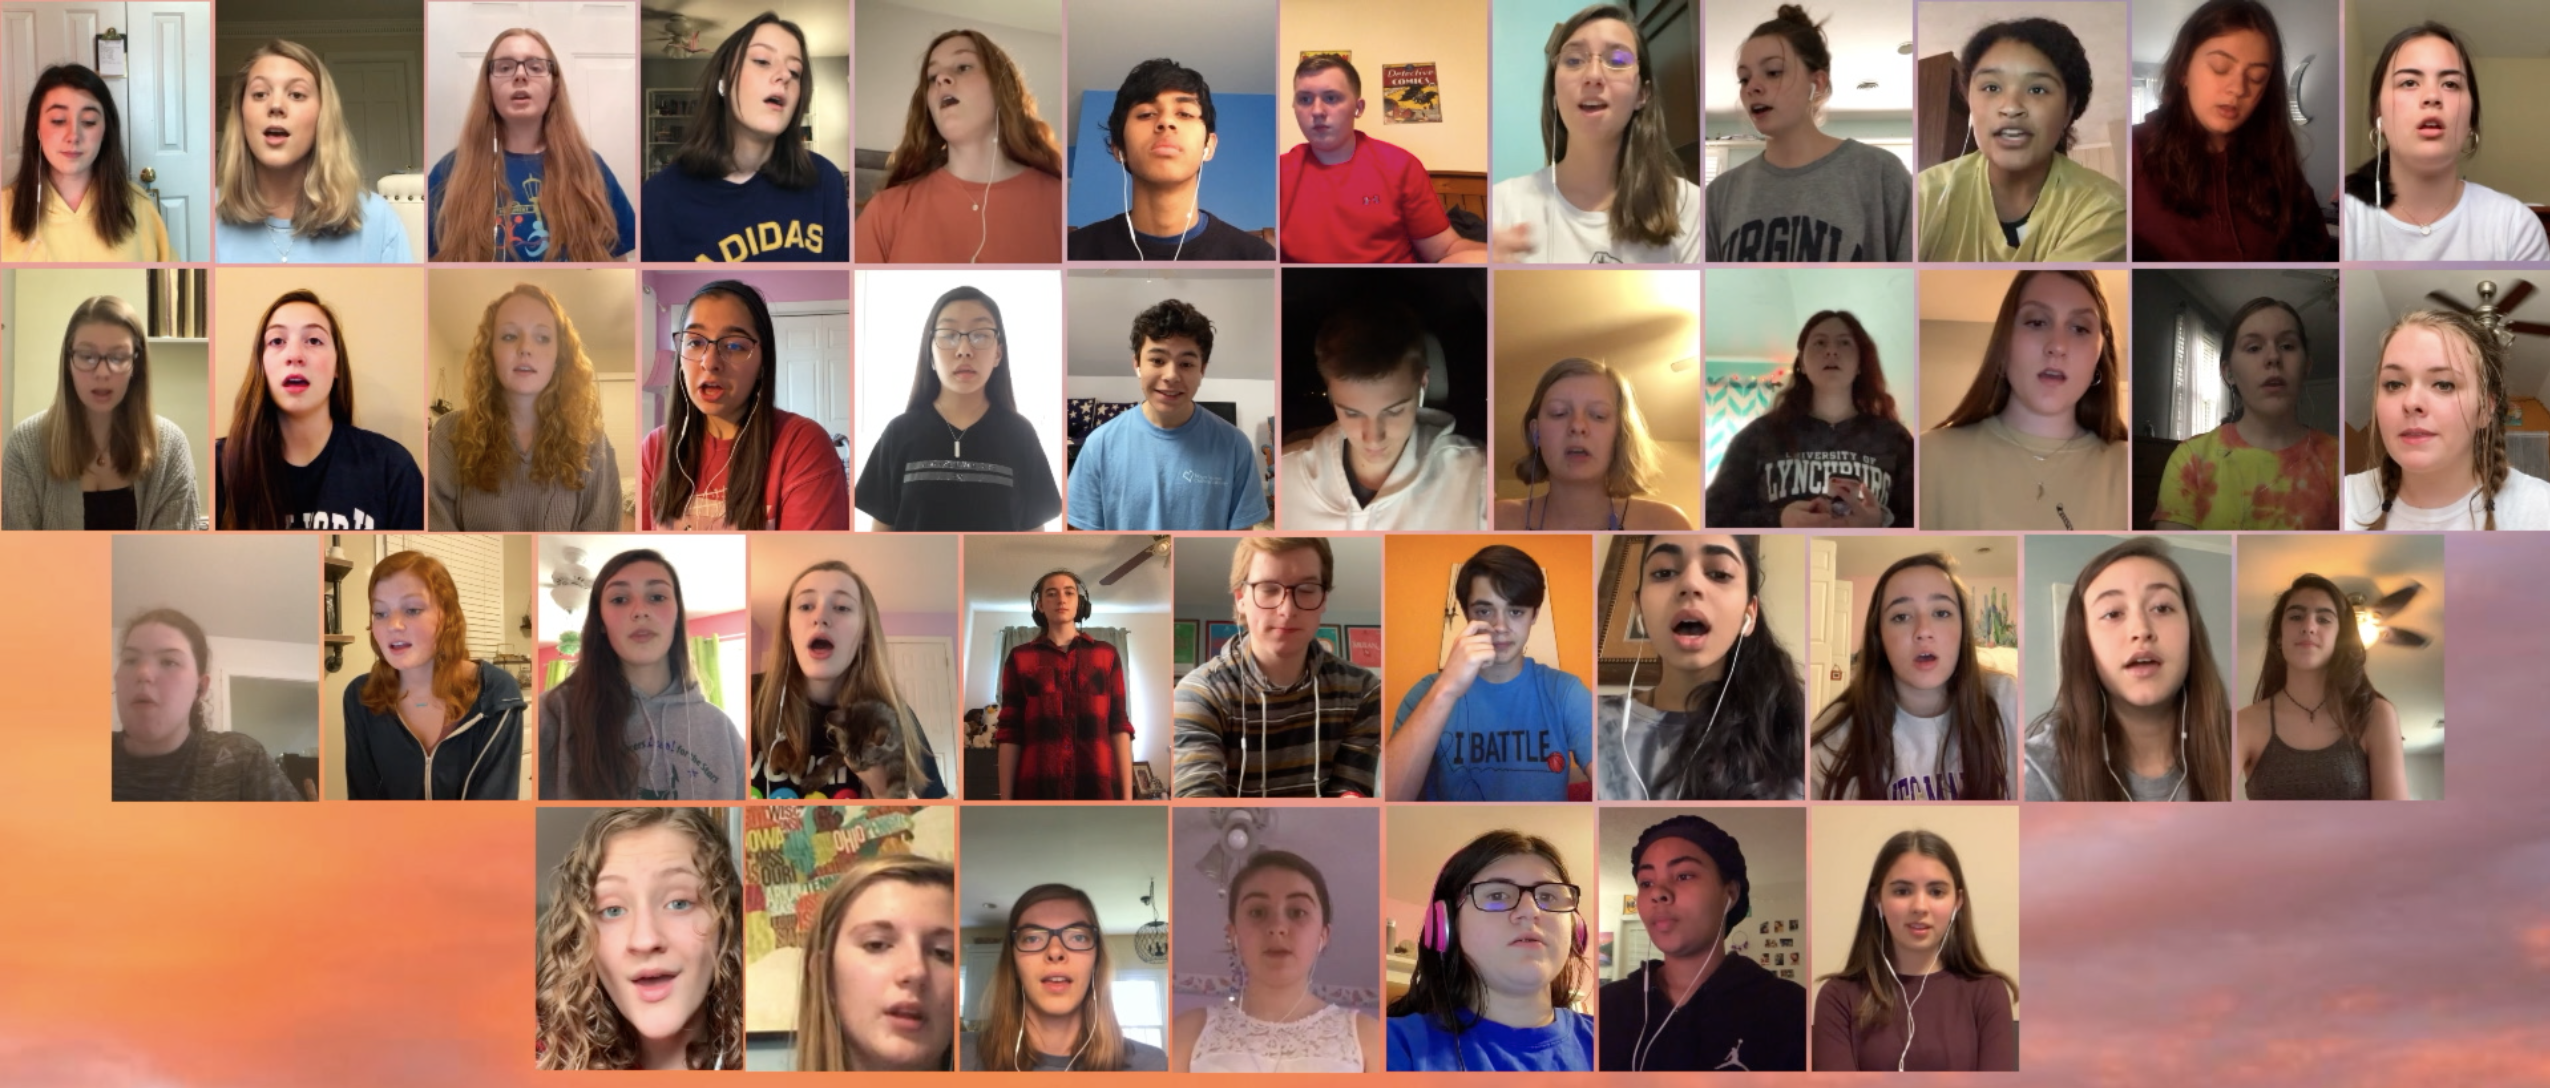 Virtual Choir Performance Continues Godwin High School's Tradition Of Excellence In Voice